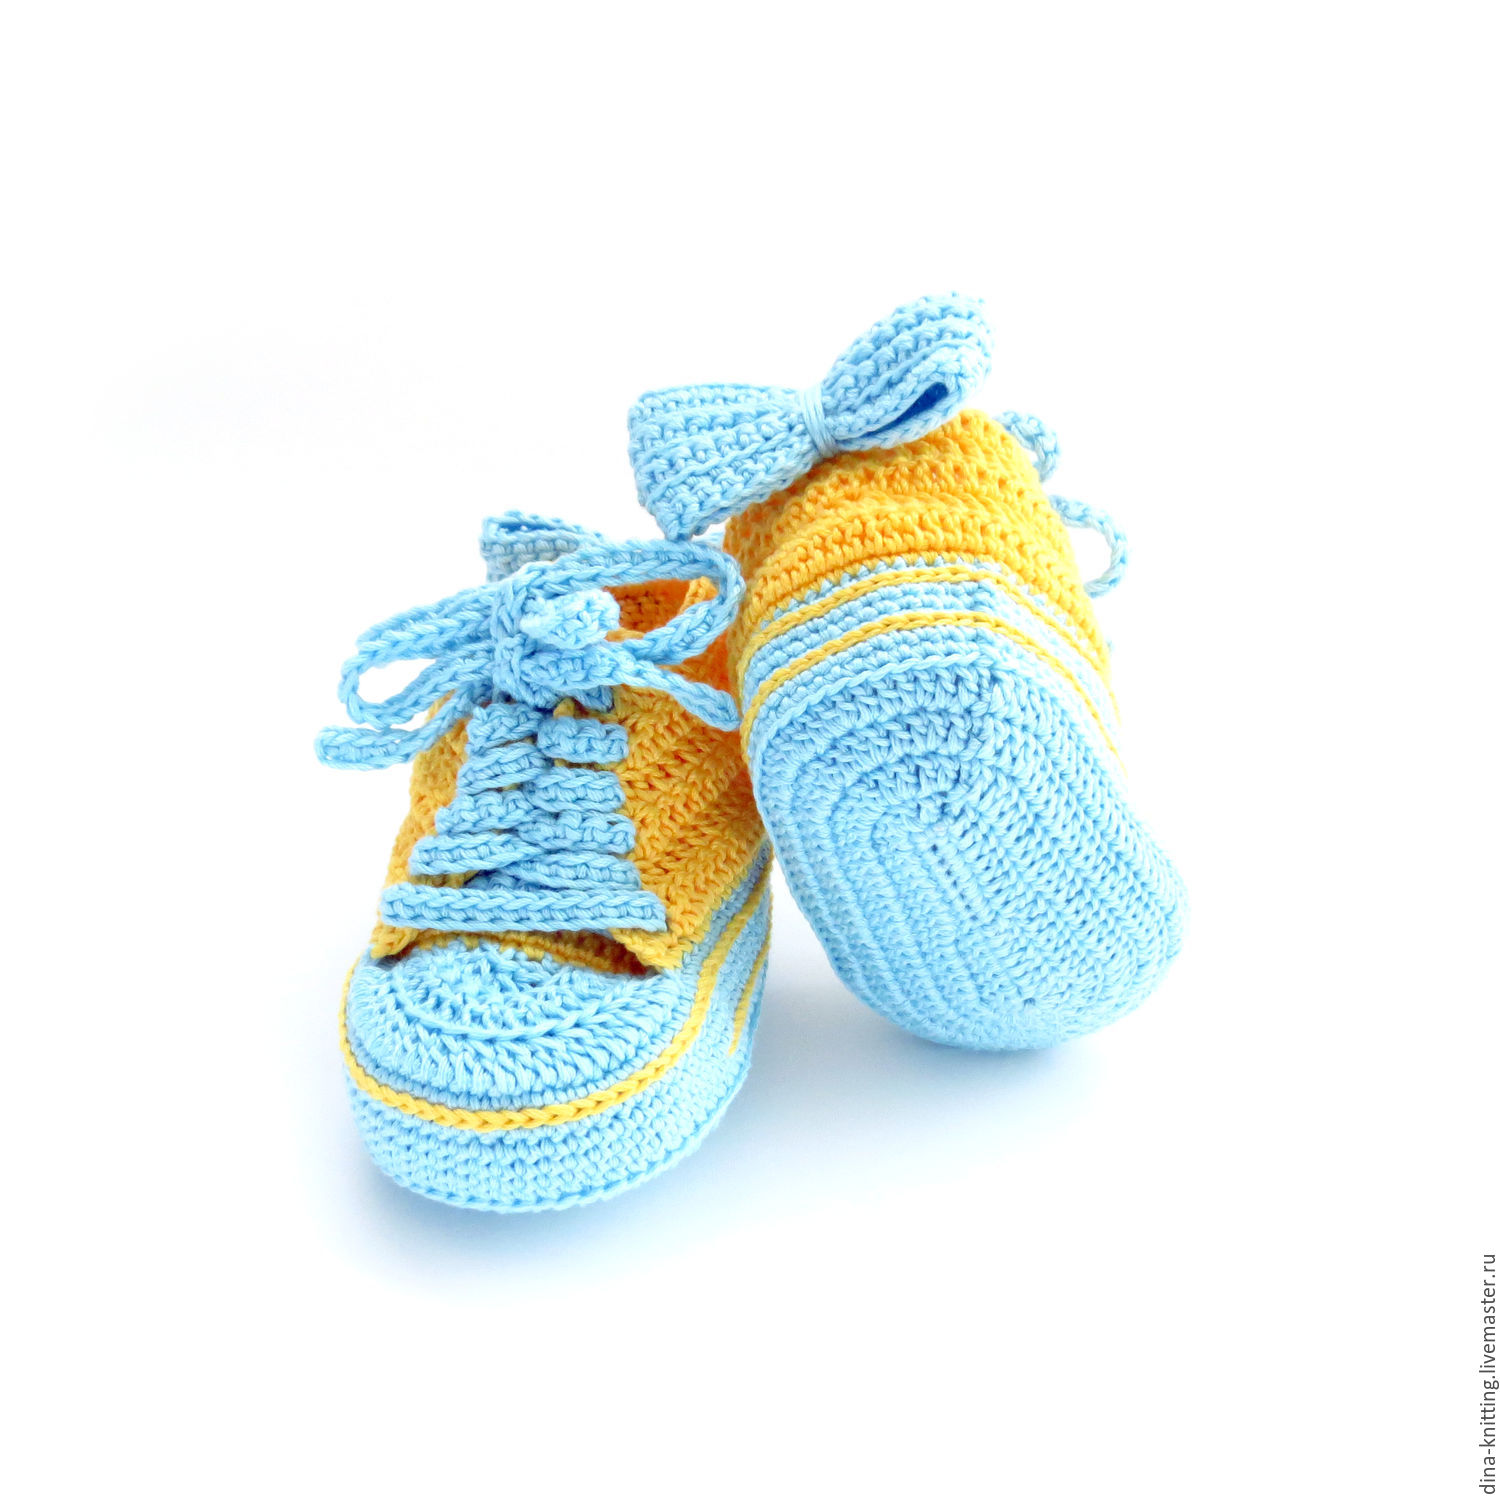 0180c7b41 booties shoes knitted shoes booties for baby girl gift for birth ...